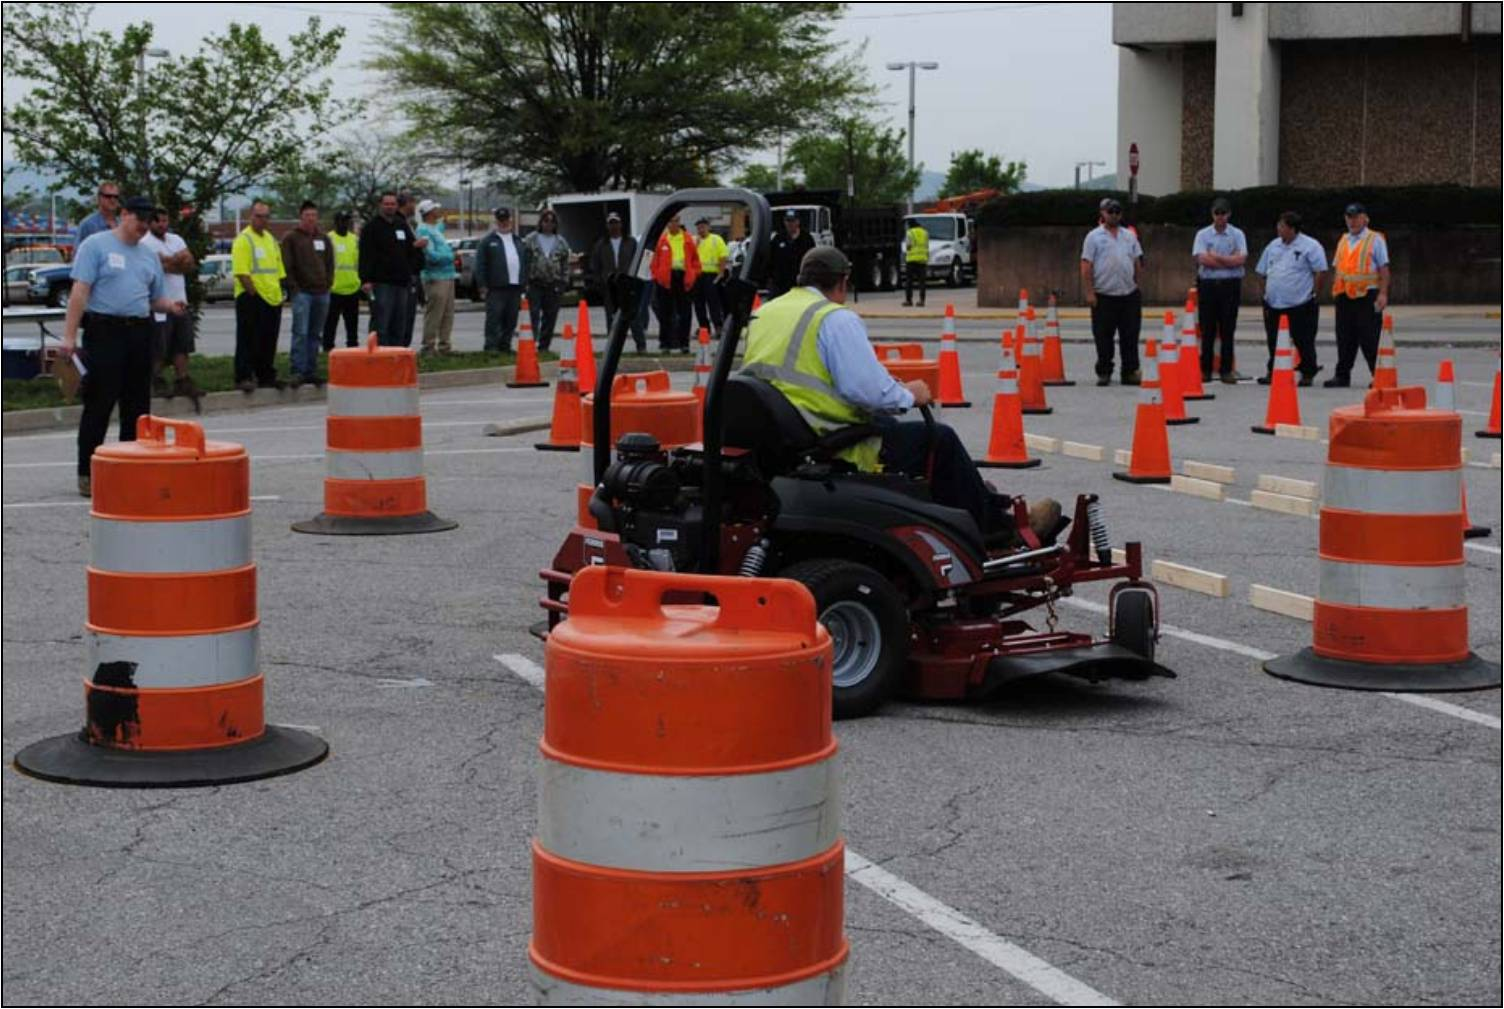 Town of Vinton employee Jared races through the obstacle course in the Zero Turn Mower event.